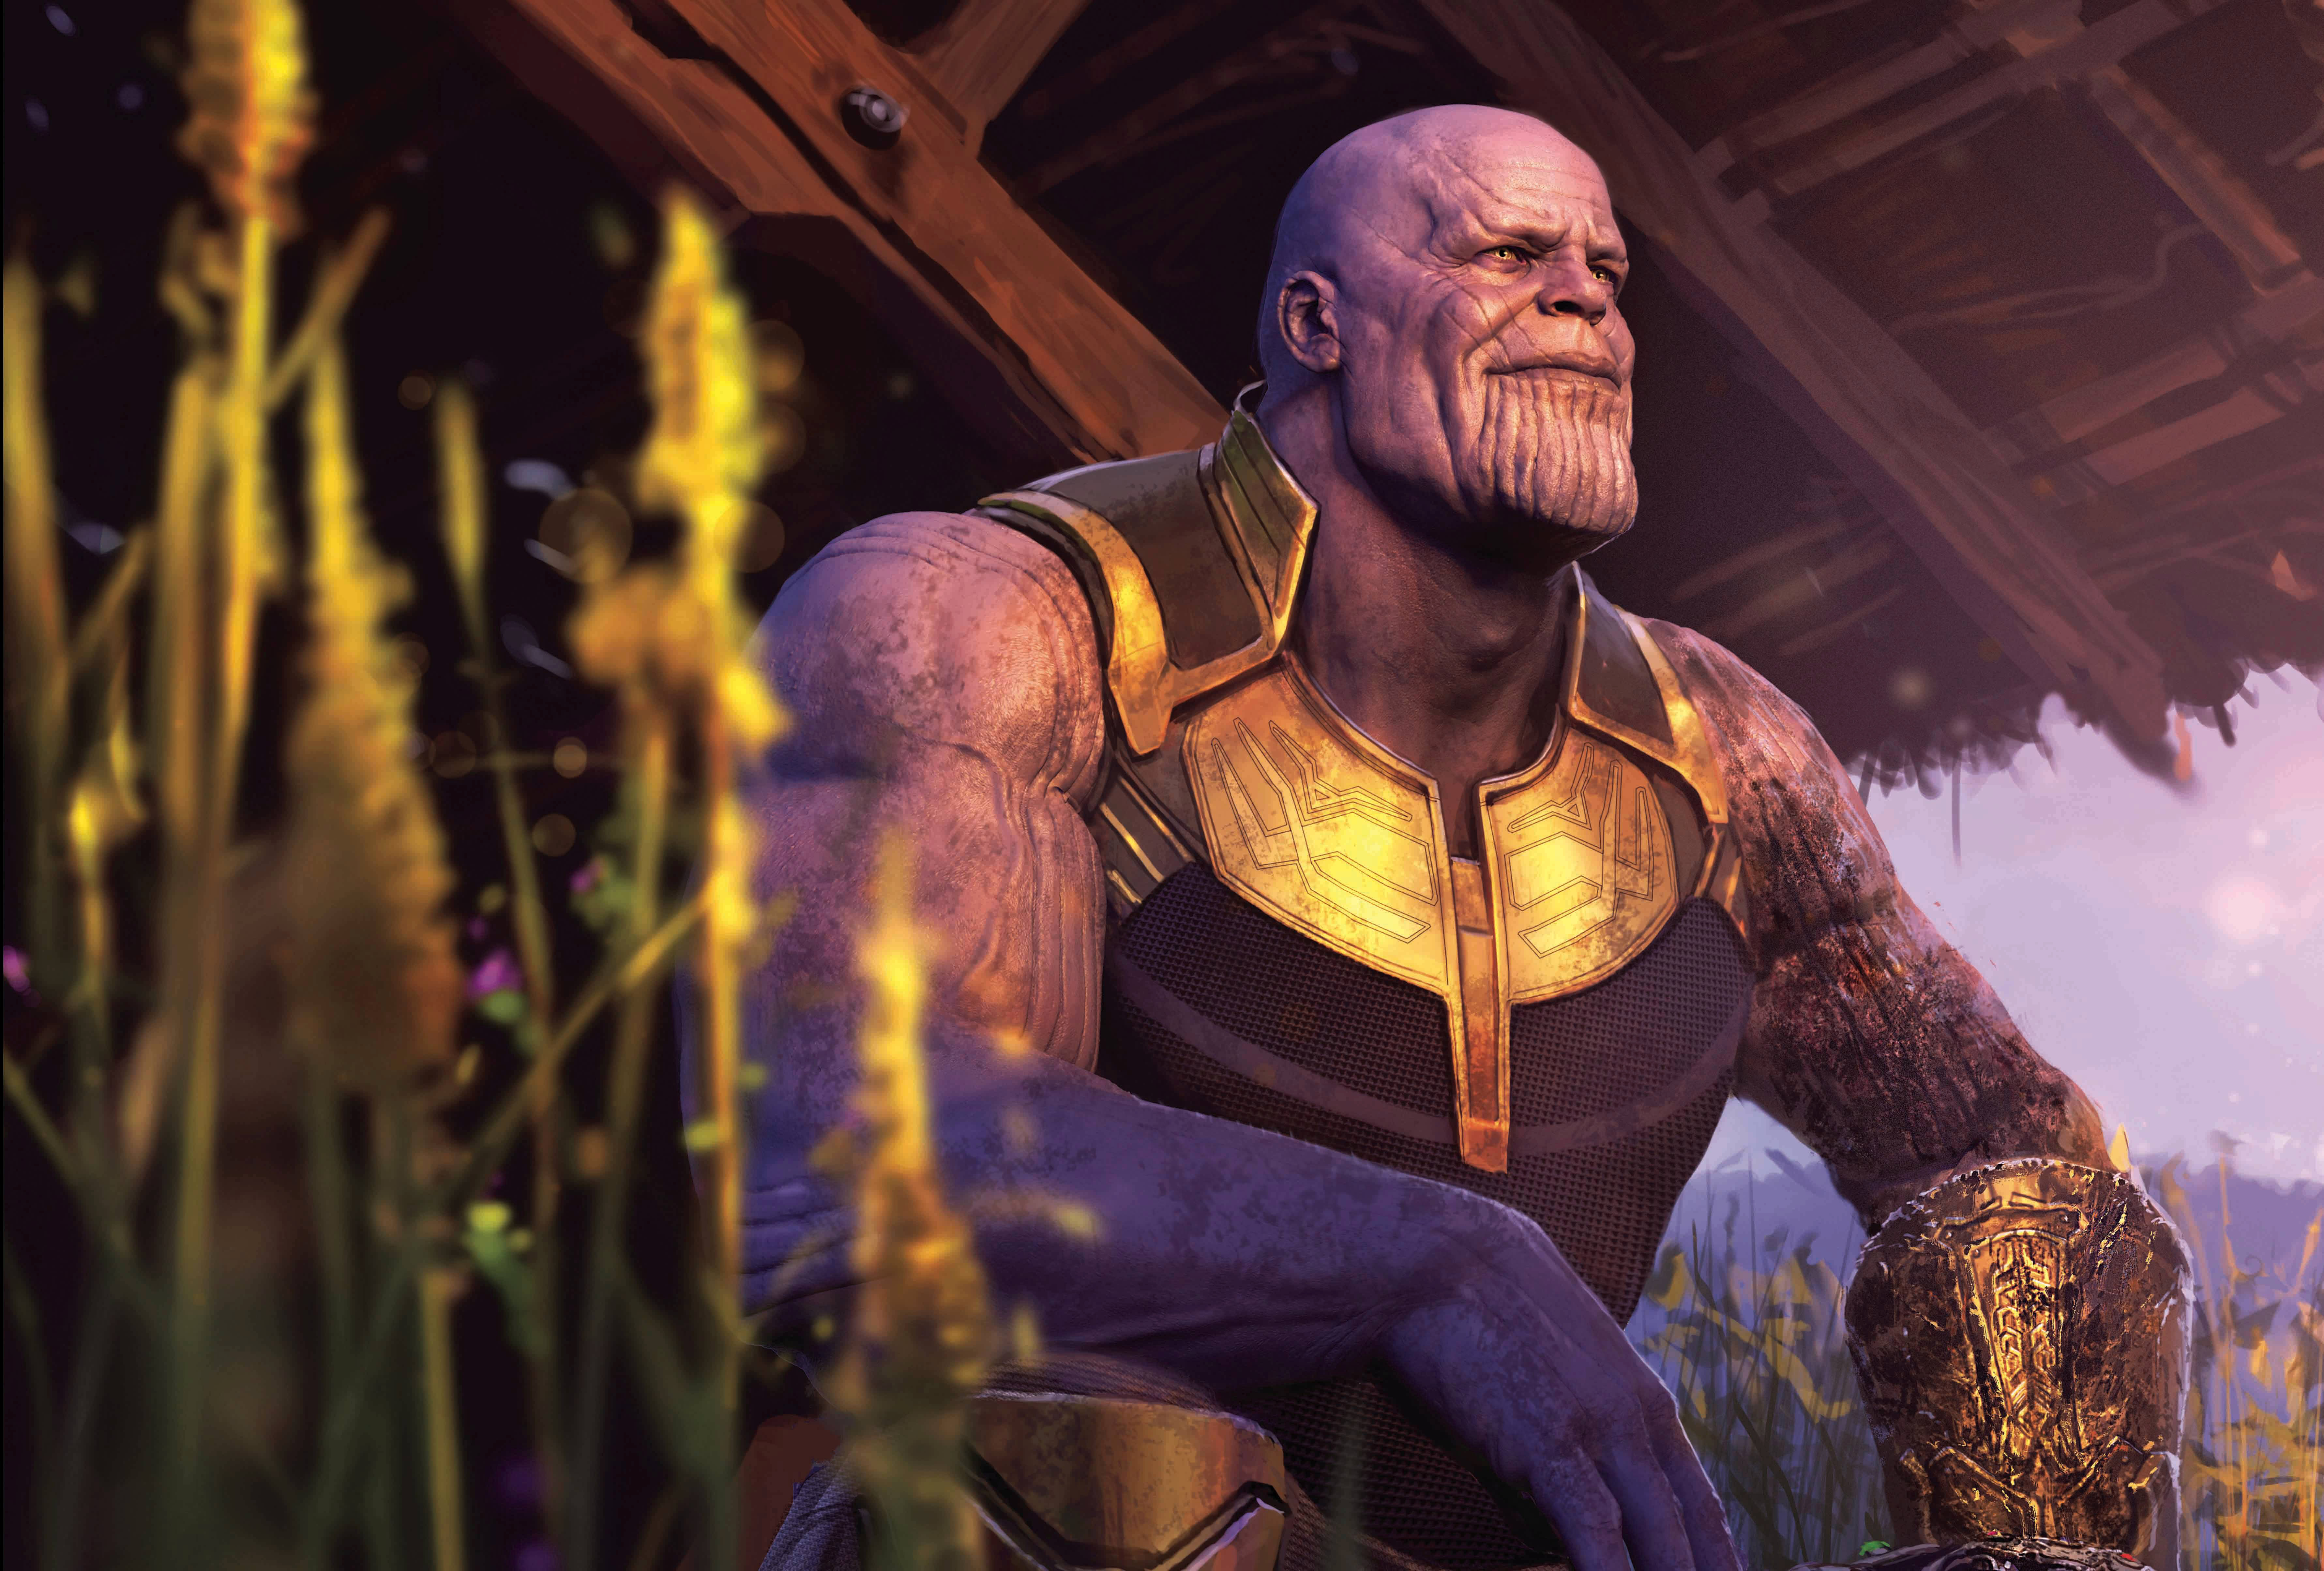 Thanos 4k Wallpaper Avengers Infinity War 8k Graphics Cgi 84